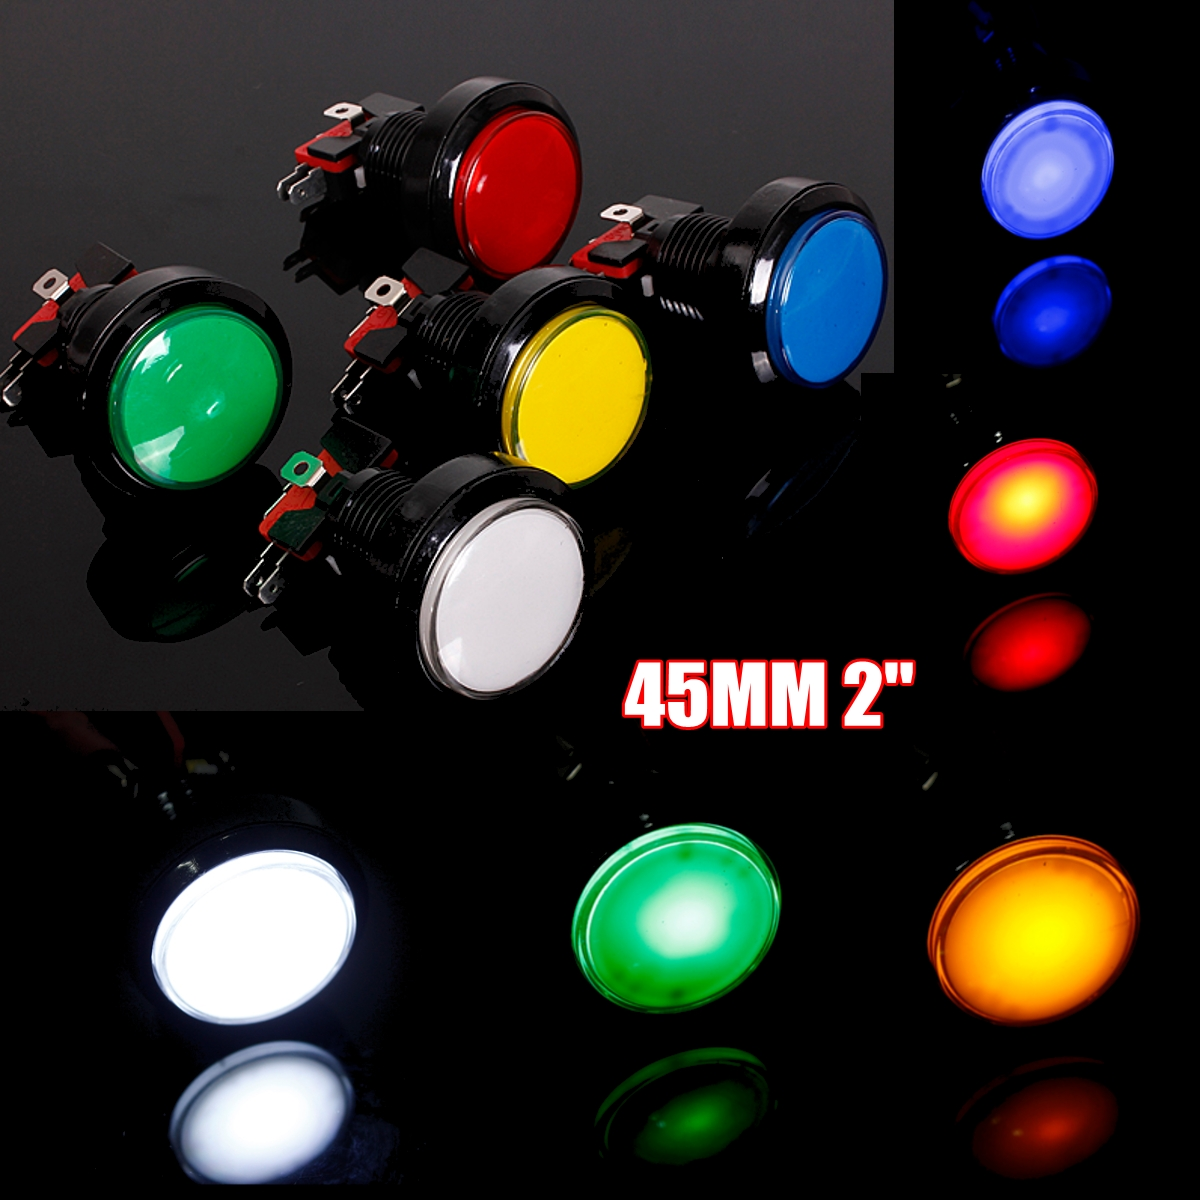 45mm Push Button Arcade Button Led Micro Switch 5V/12V Power Button Switch Set Green/Yellow/Red/White/Blue(China)